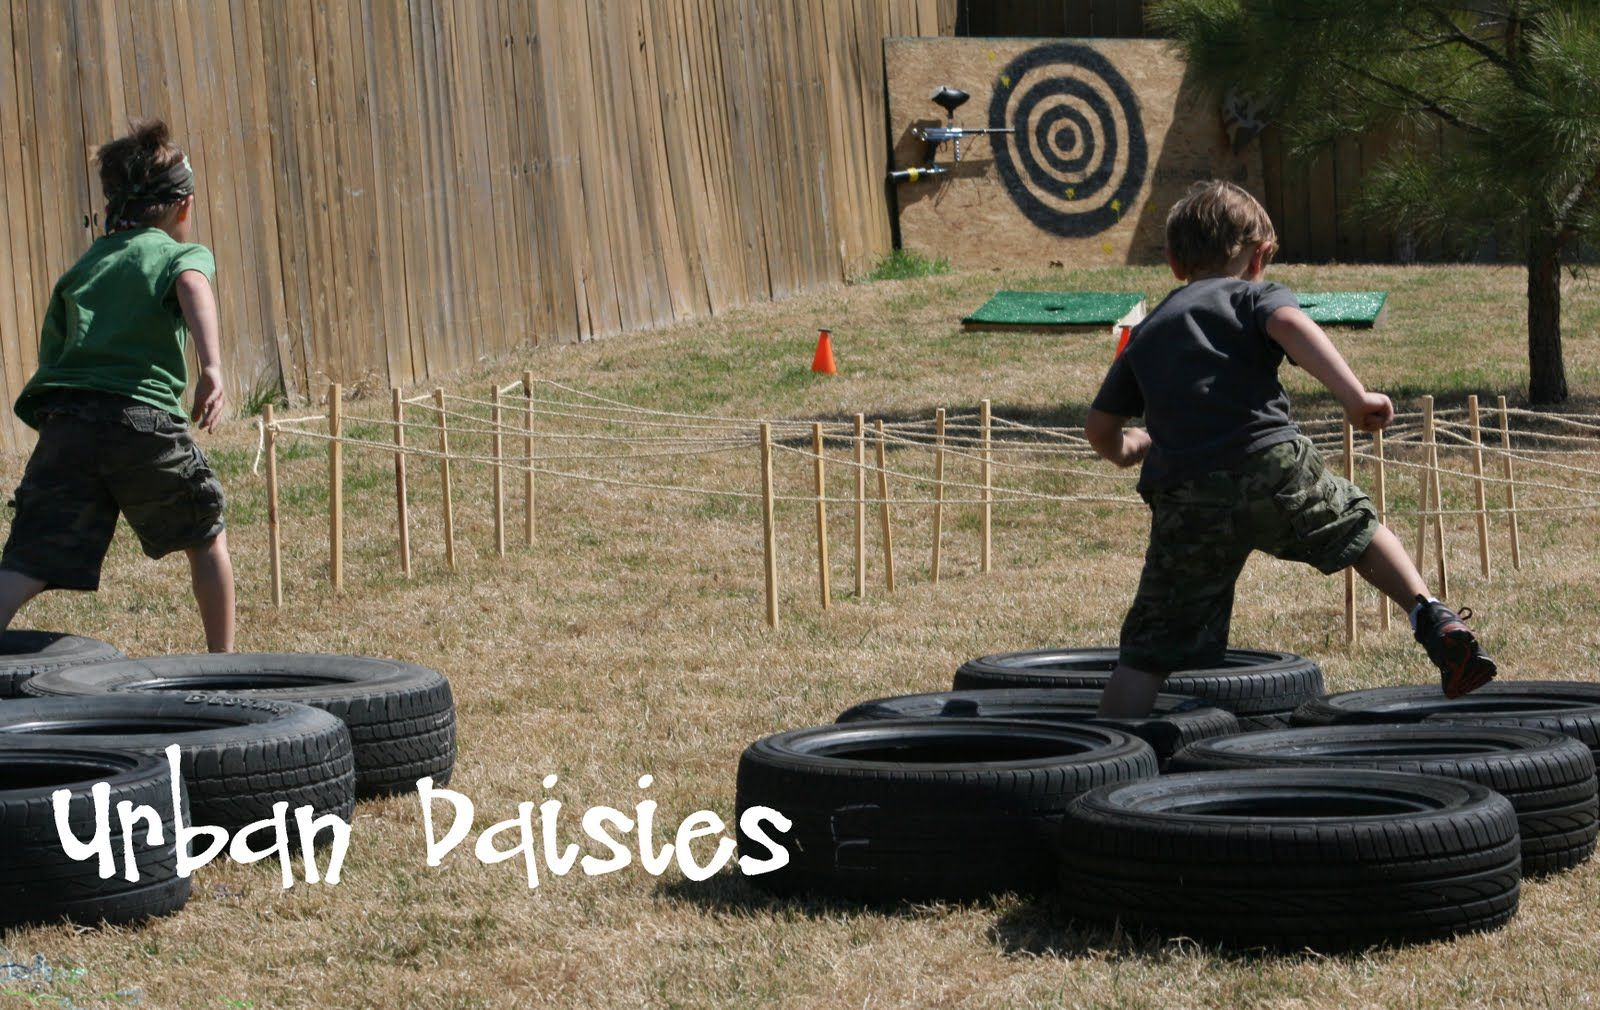 Army Birthday Party idea Run an obstacle course in the backyard